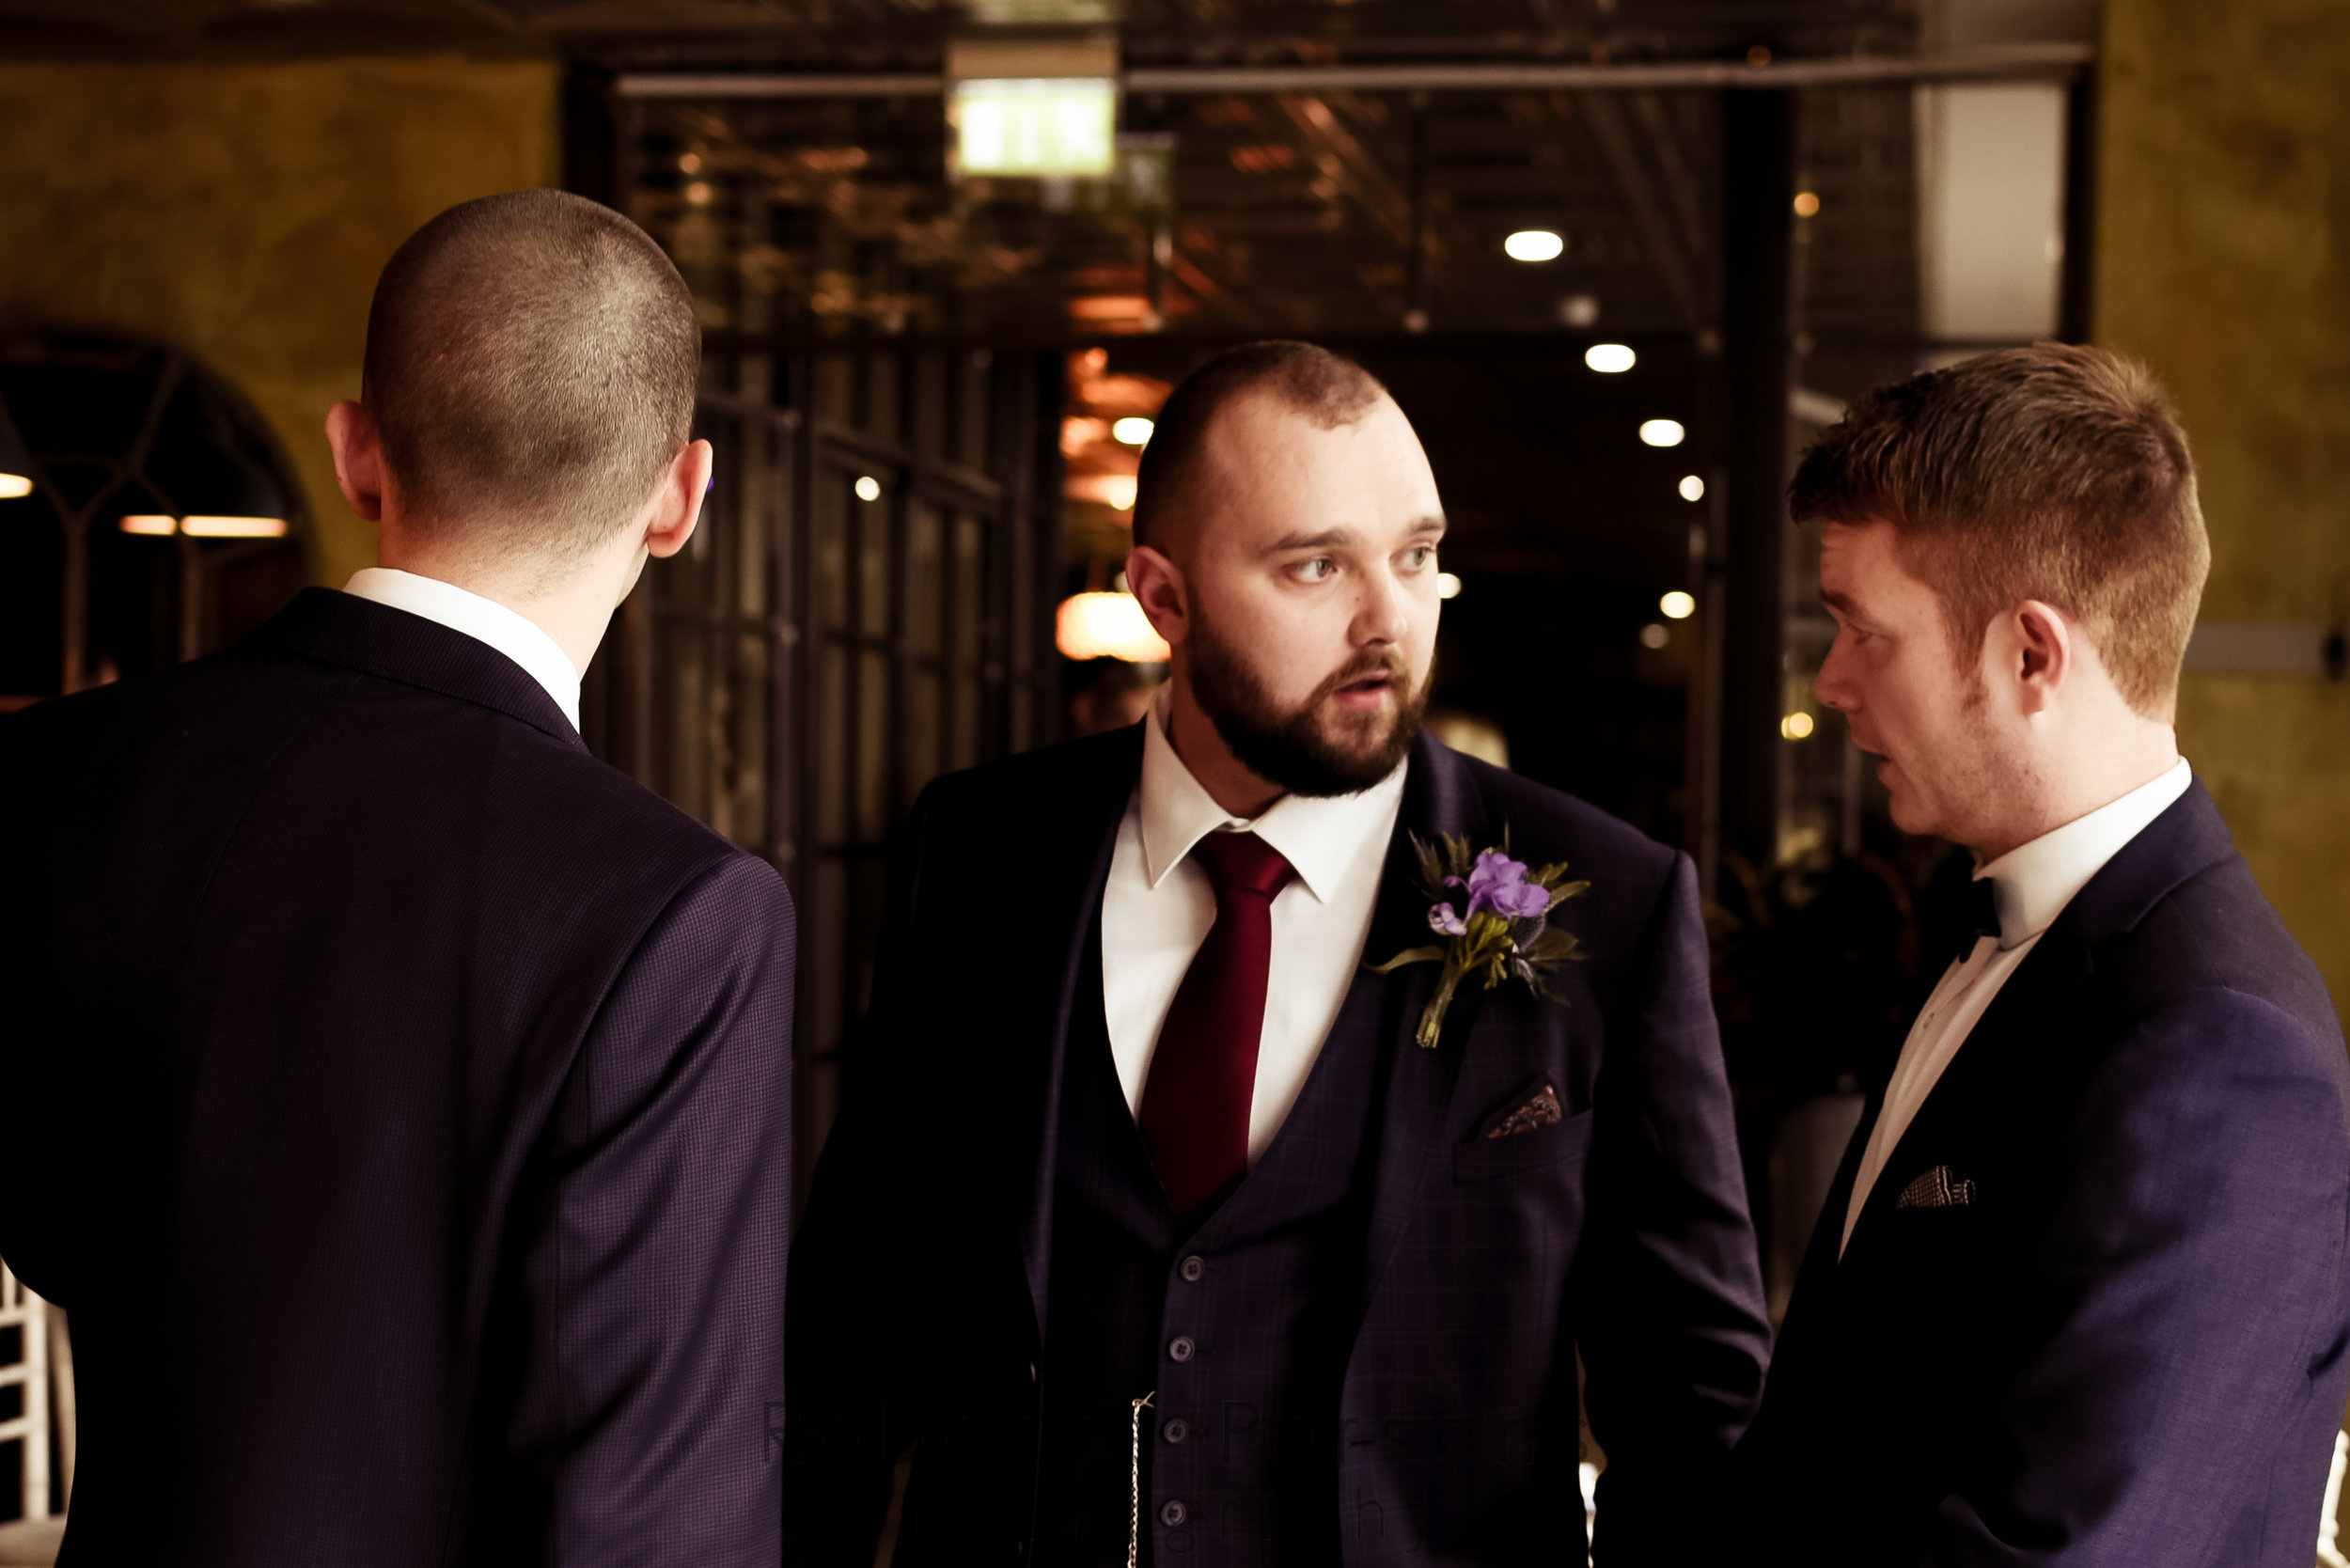 Groom waiting with best man